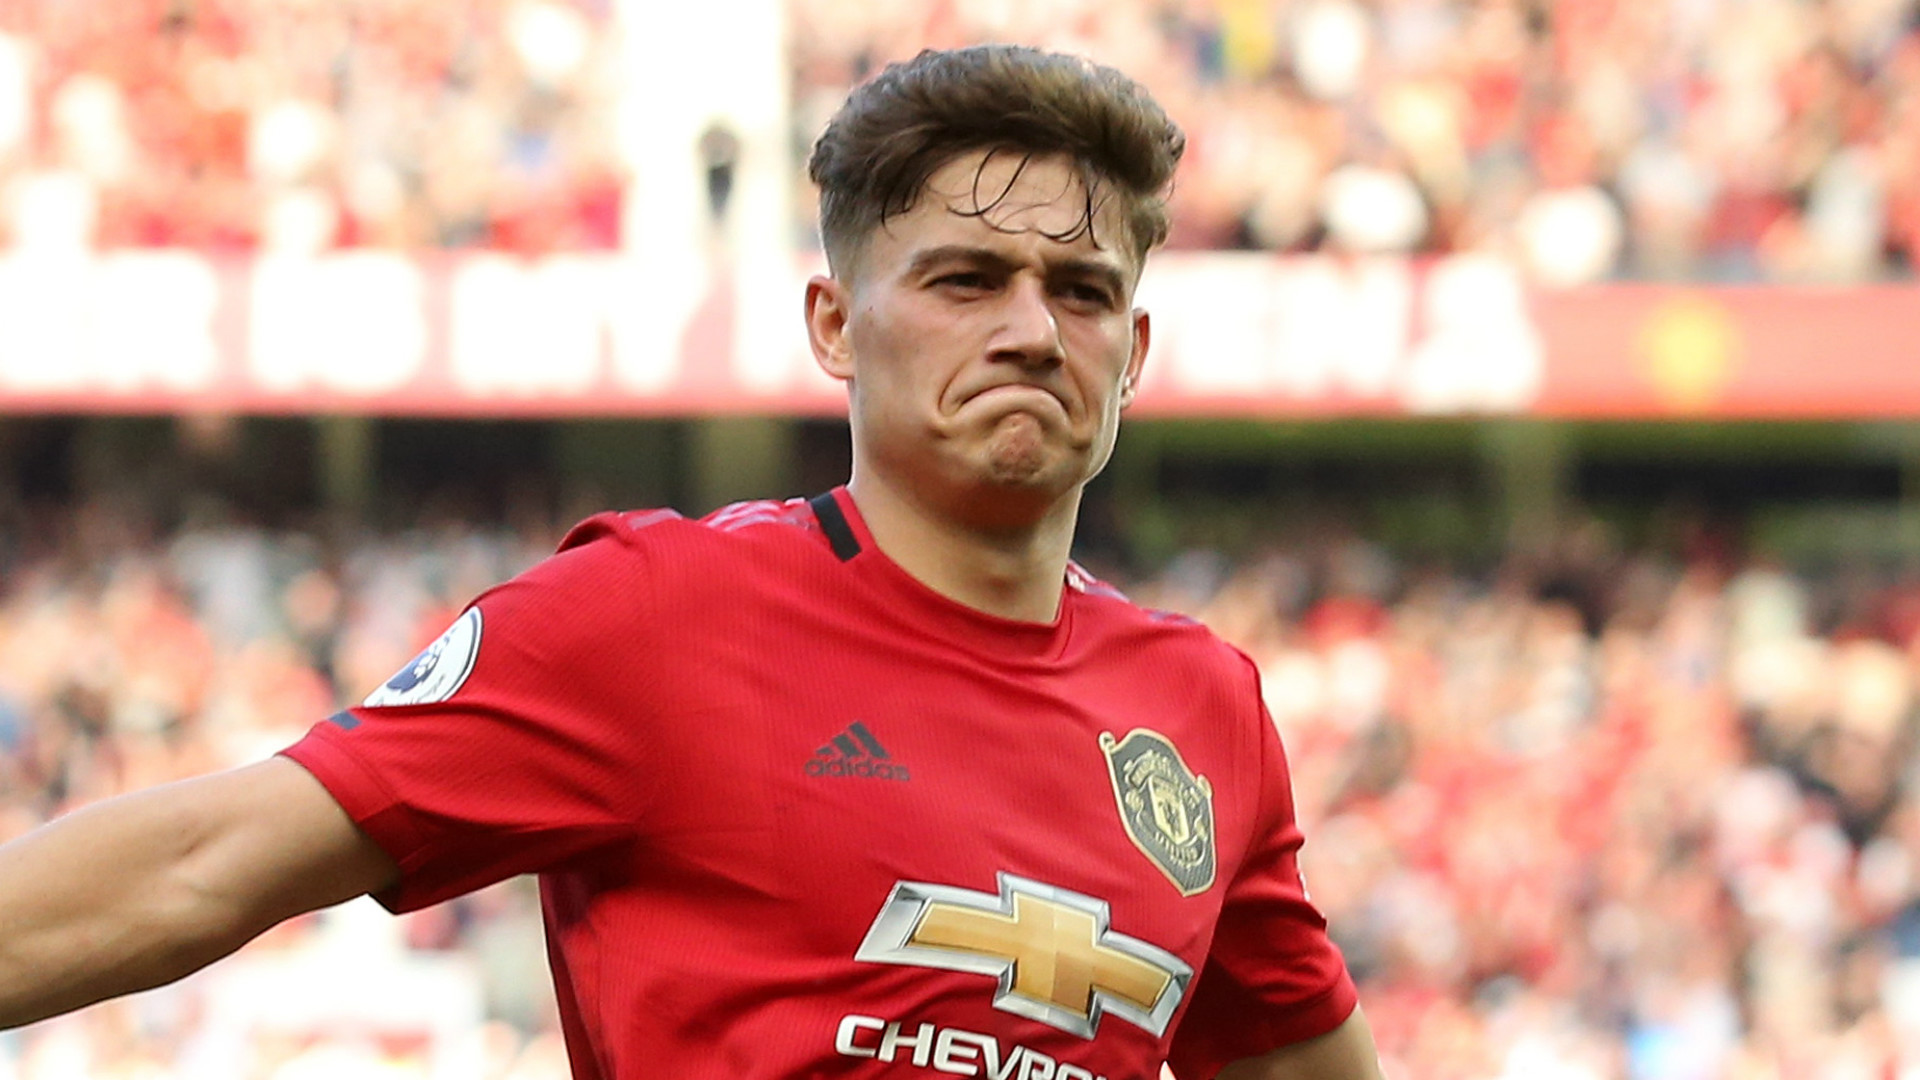 'Exciting' James backed by Giggs to give Man Utd fans what they crave